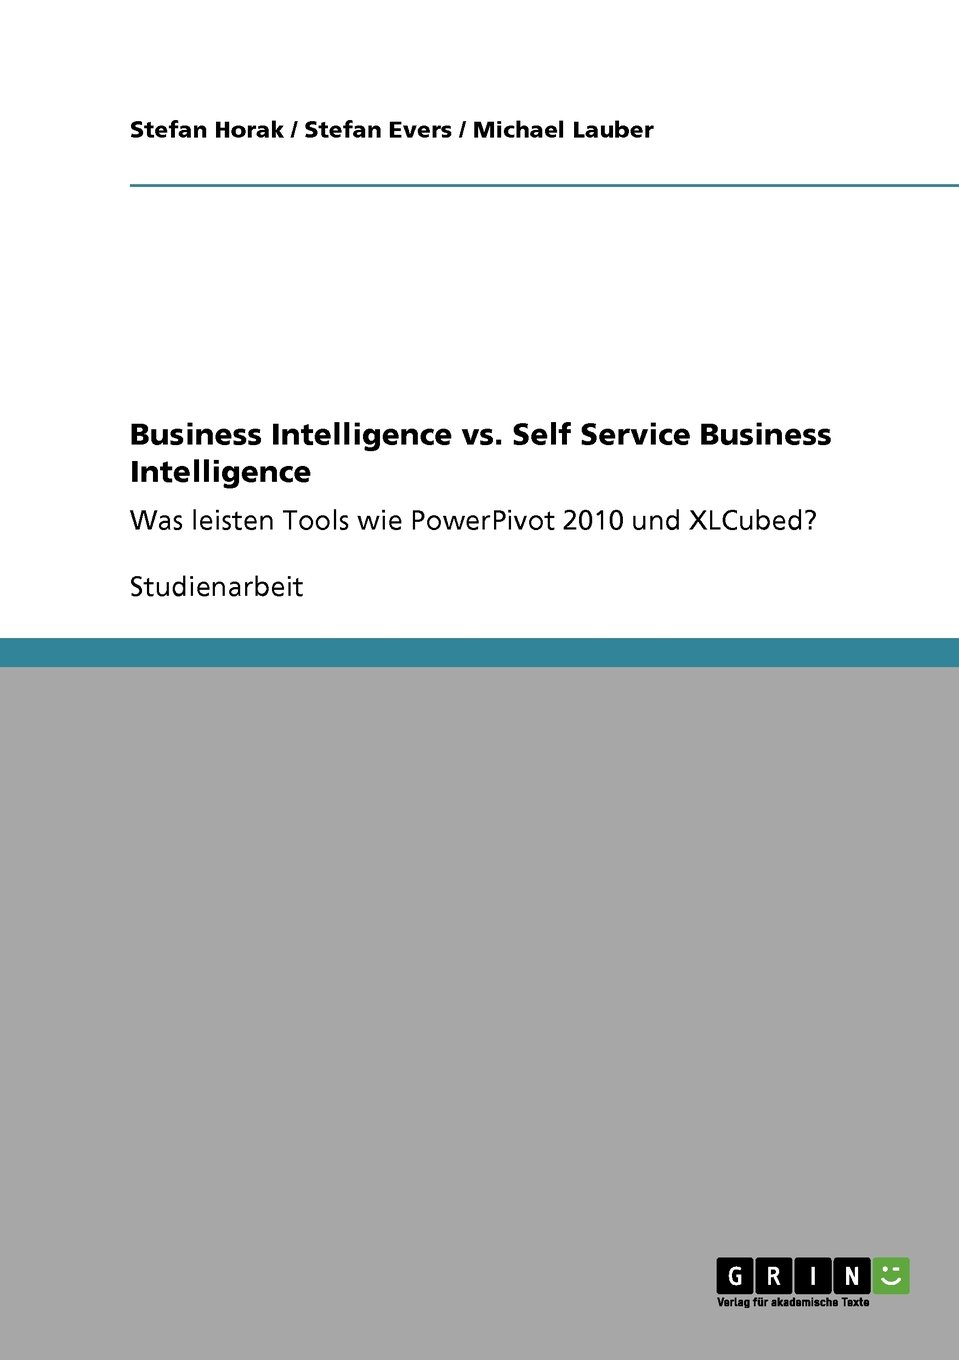 business-intelligence-vs-self-service-business-intelligence-was-leisten-tools-wie-powerpivot-2010-und-xlcubed